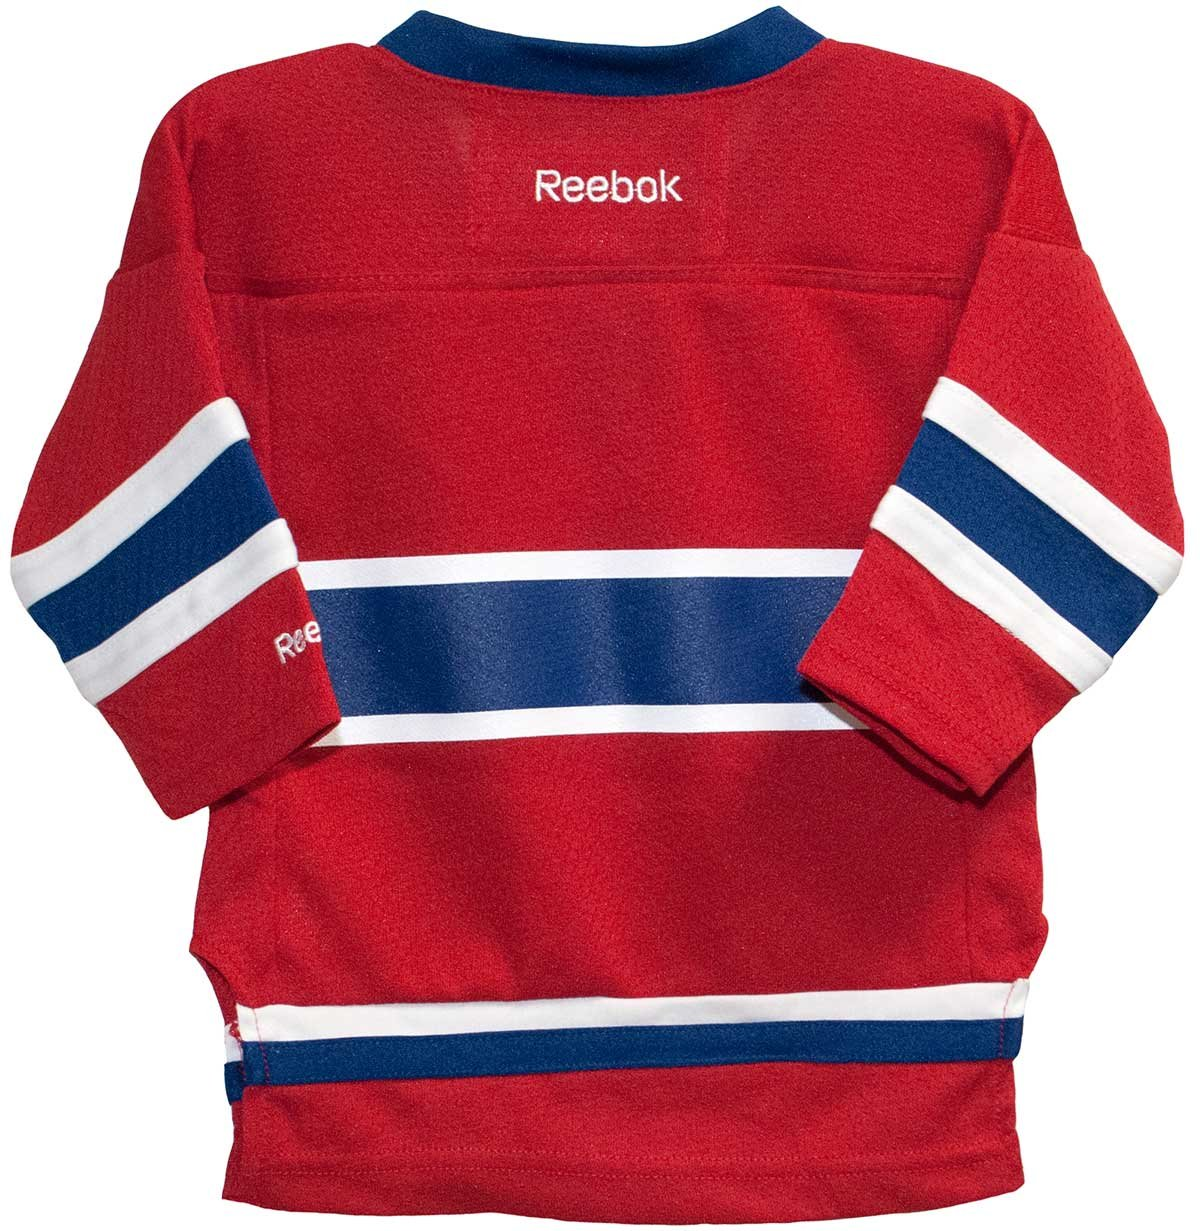 quality design 1fc63 c3799 Montreal Canadiens NHL Infant One Size Team Color Jersey Red (12-24 Months)